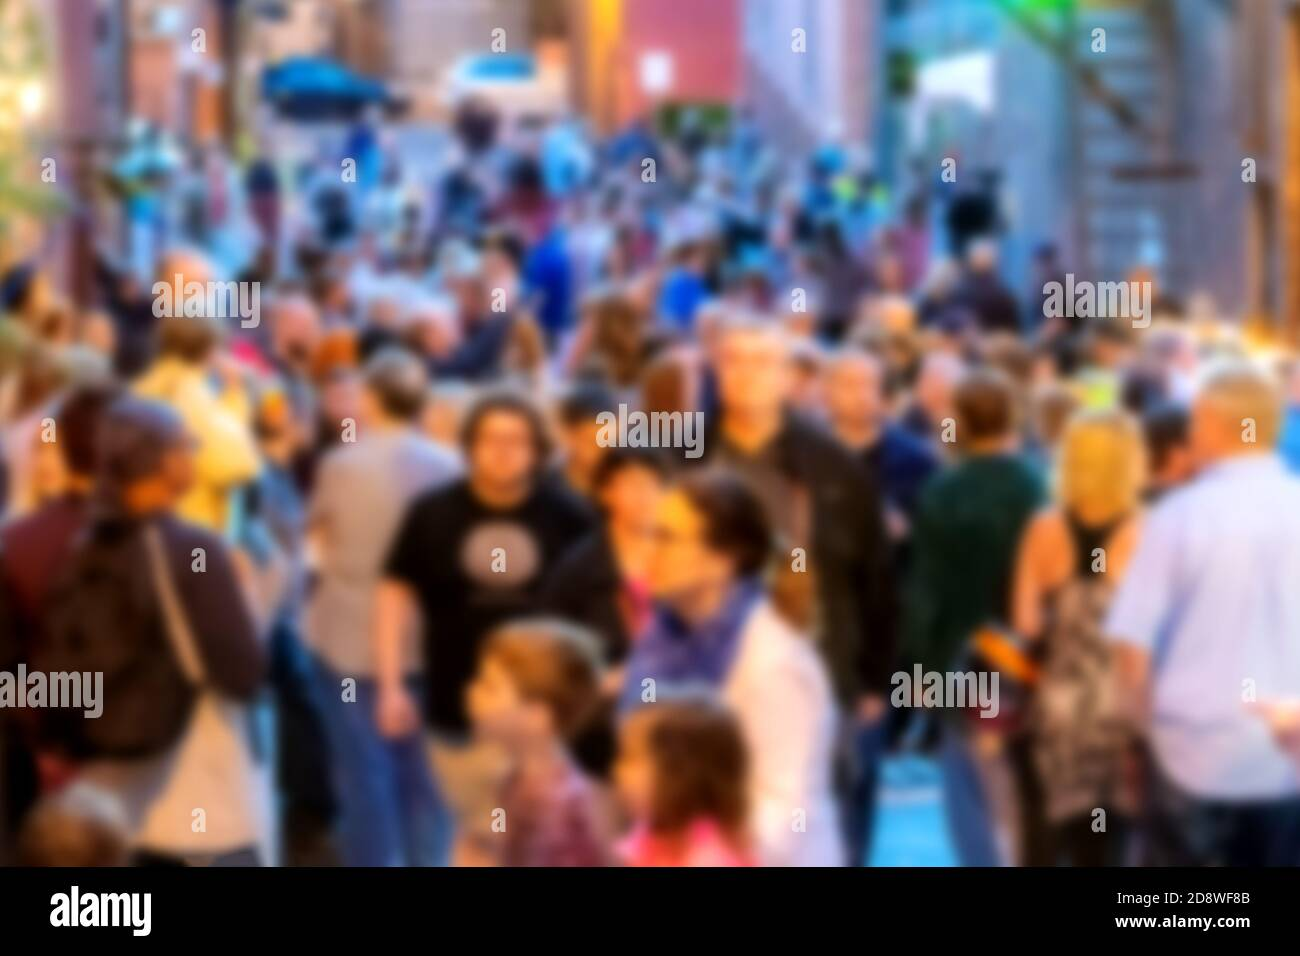 A blur of a crowd of people at dusk. People are gathered on a street between buildings. People are blurred enough not to be recognizable. Stock Photo